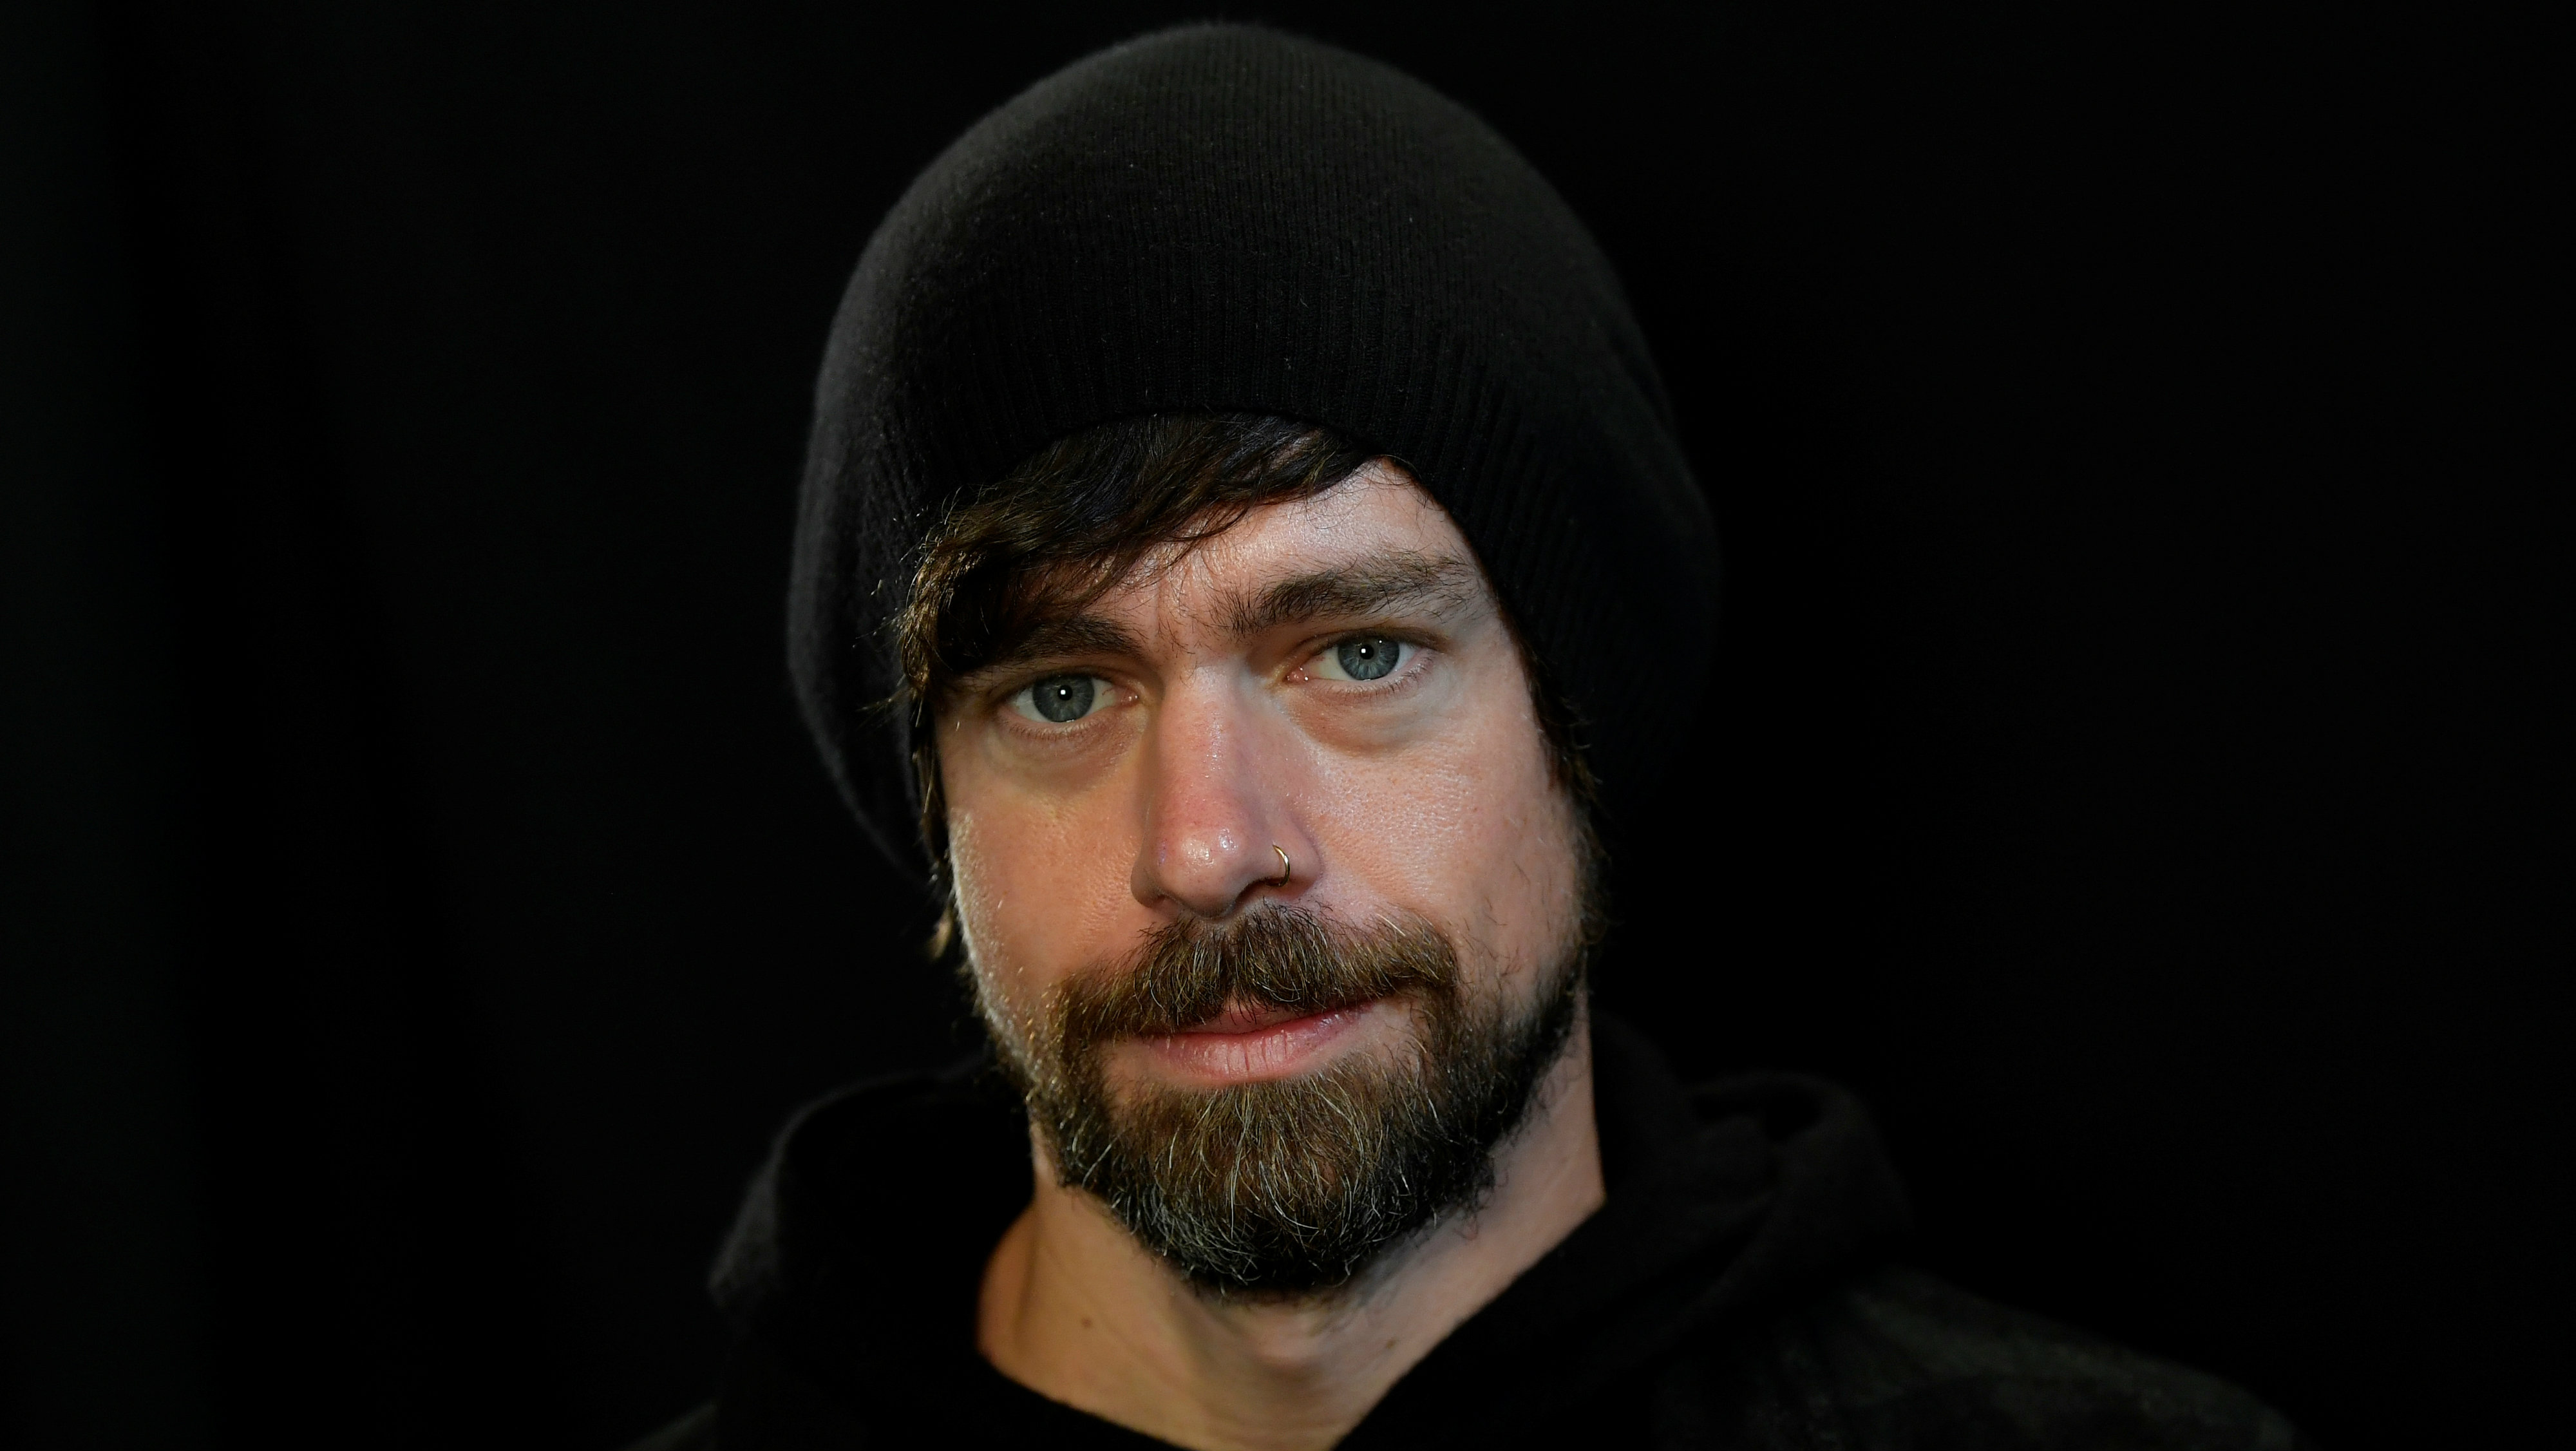 Jack Dorsey on bitcoin, Facebook's crypto, and the end of cash — Quartz